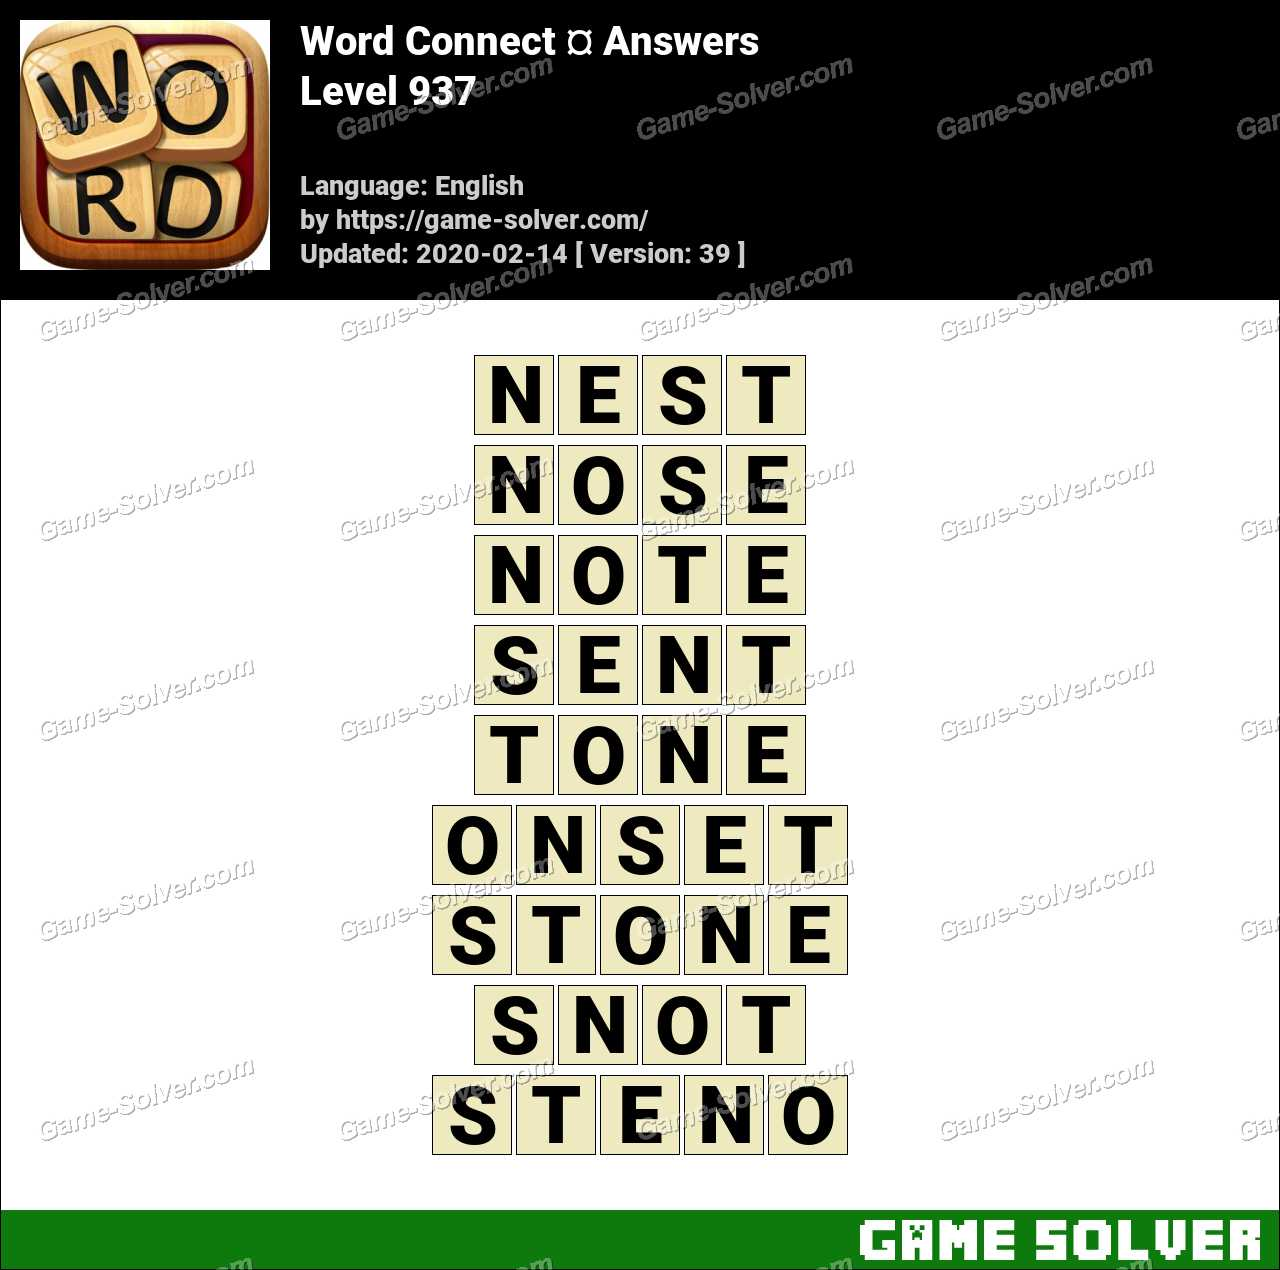 Word Connect Level 937 Answers